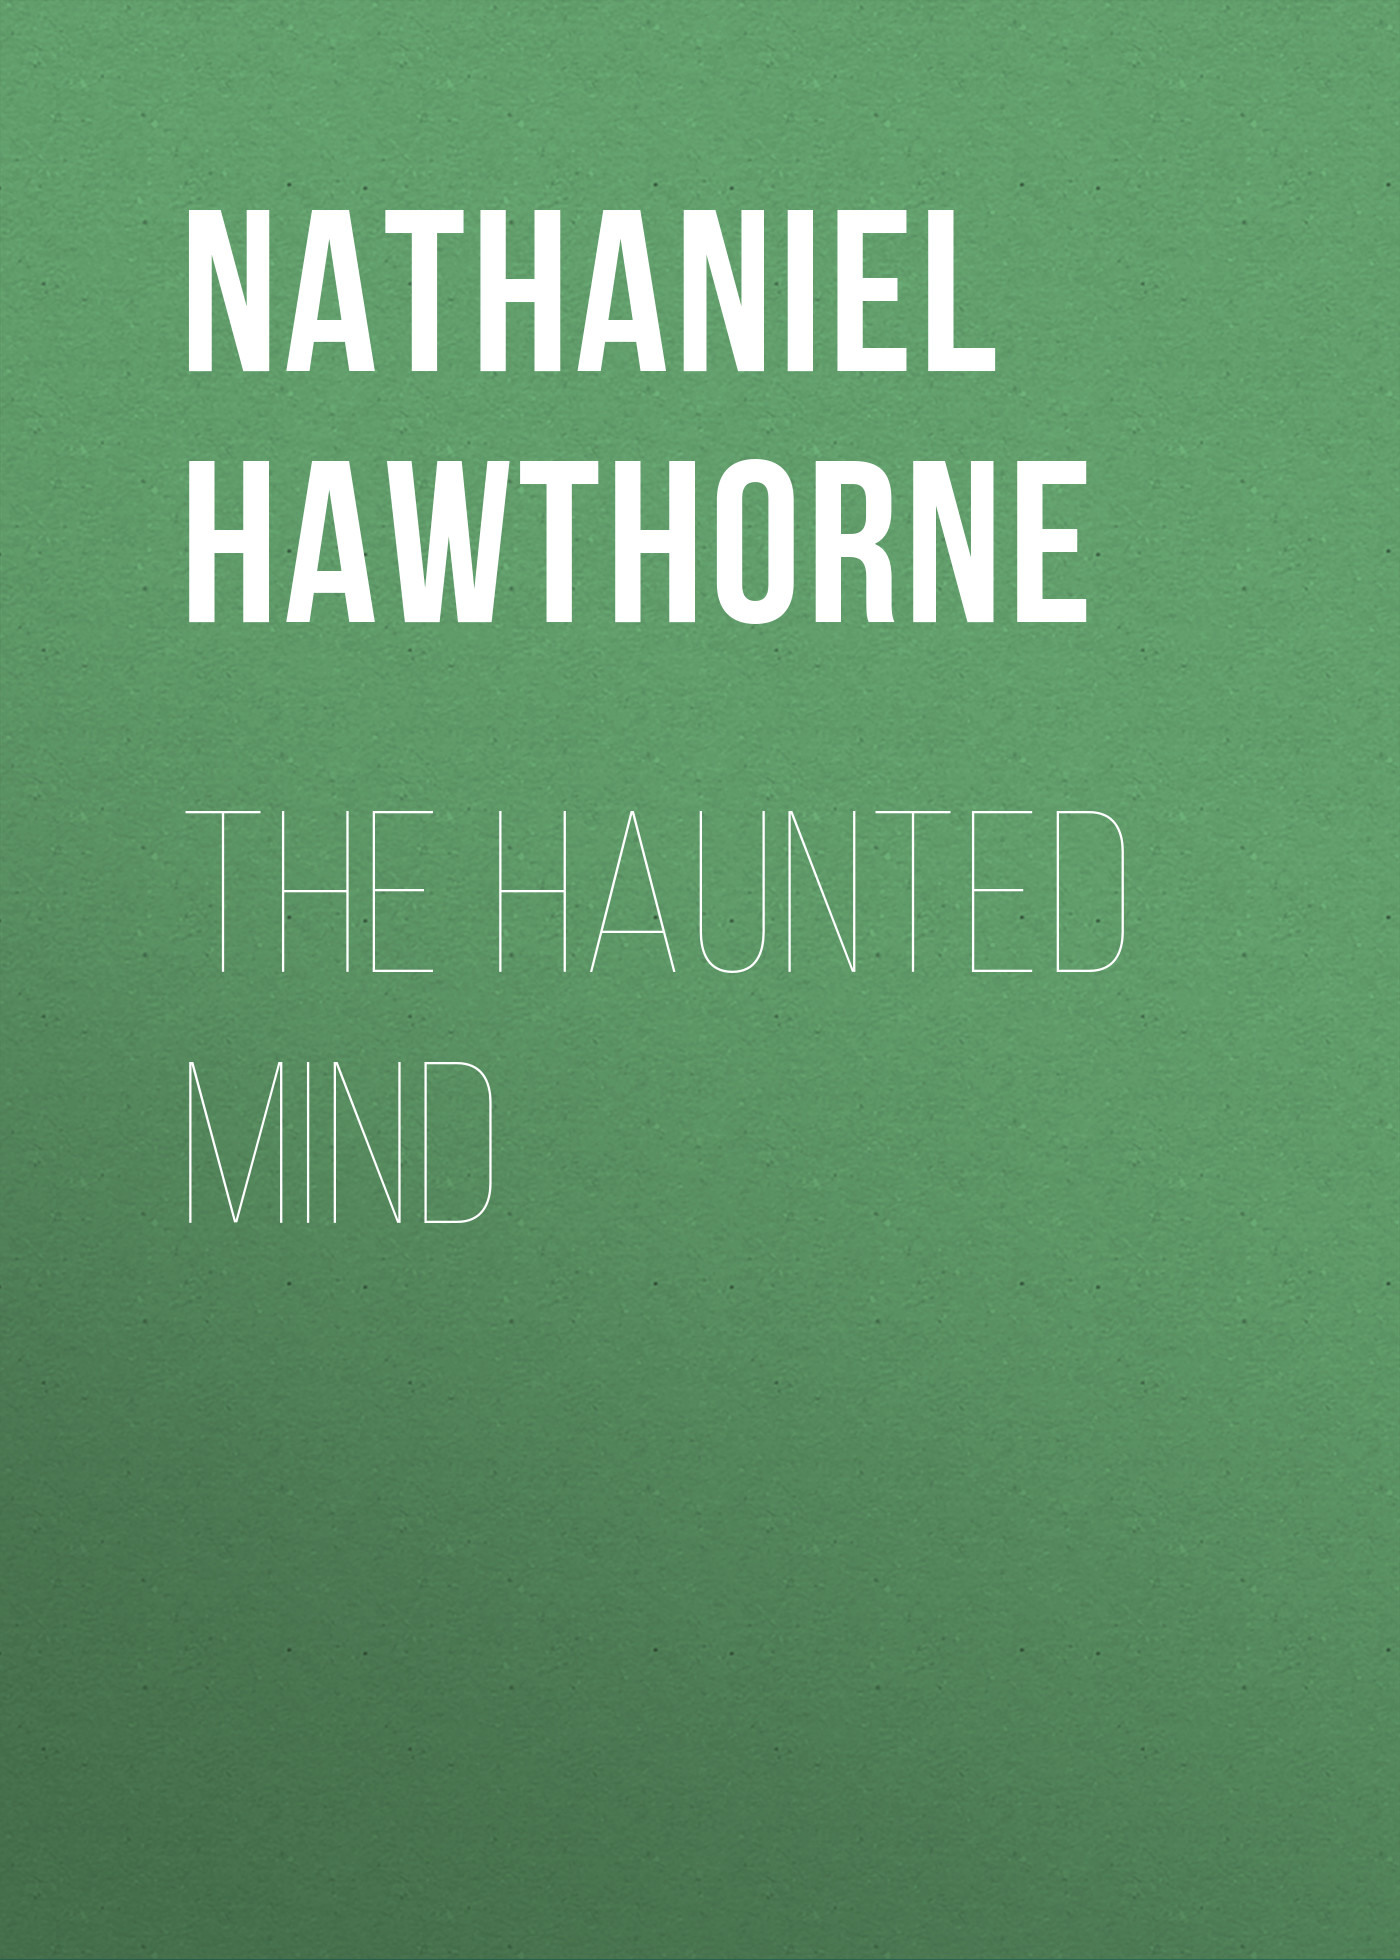 Nathaniel Hawthorne The Haunted Mind haunted